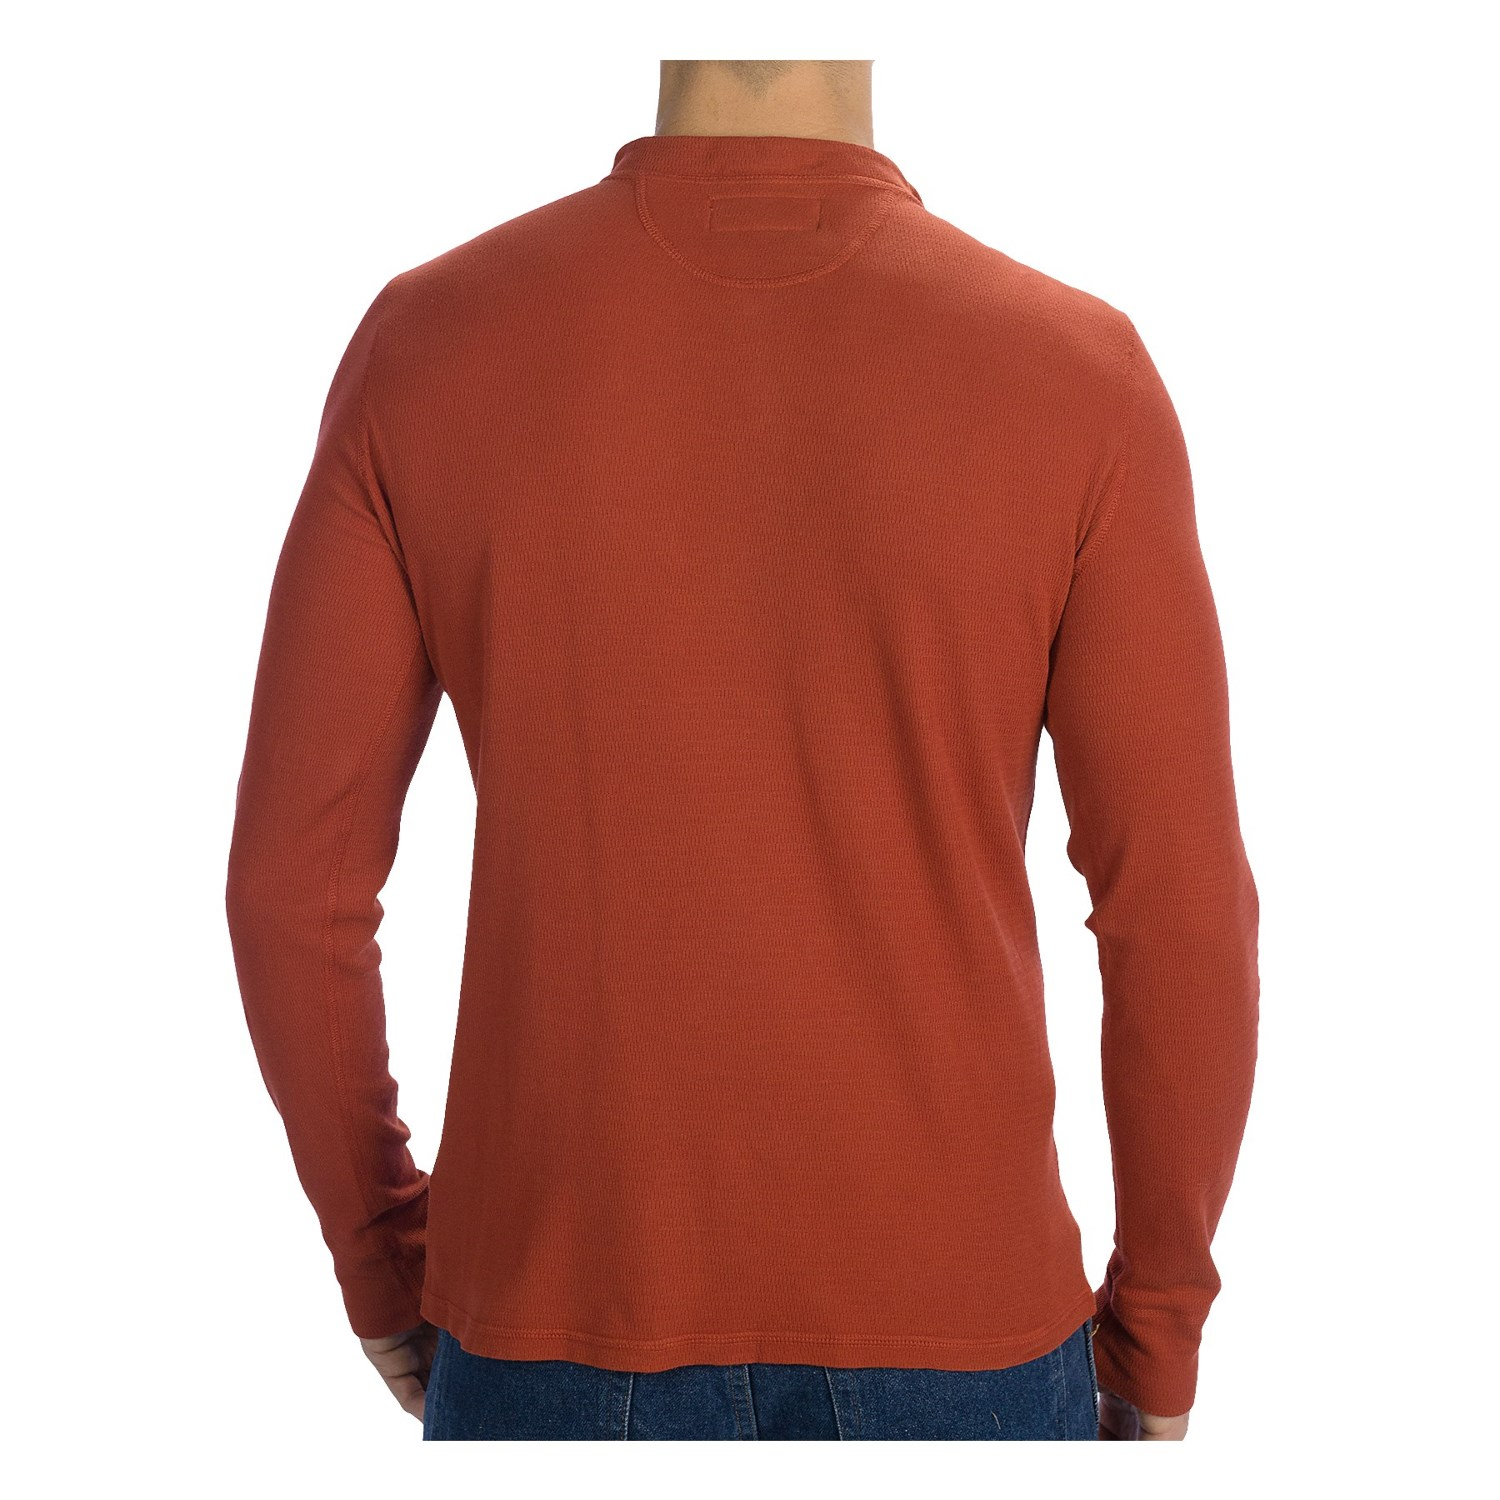 Stanley Mens Workwear Sherpa Lined Henley Thermal Shirt